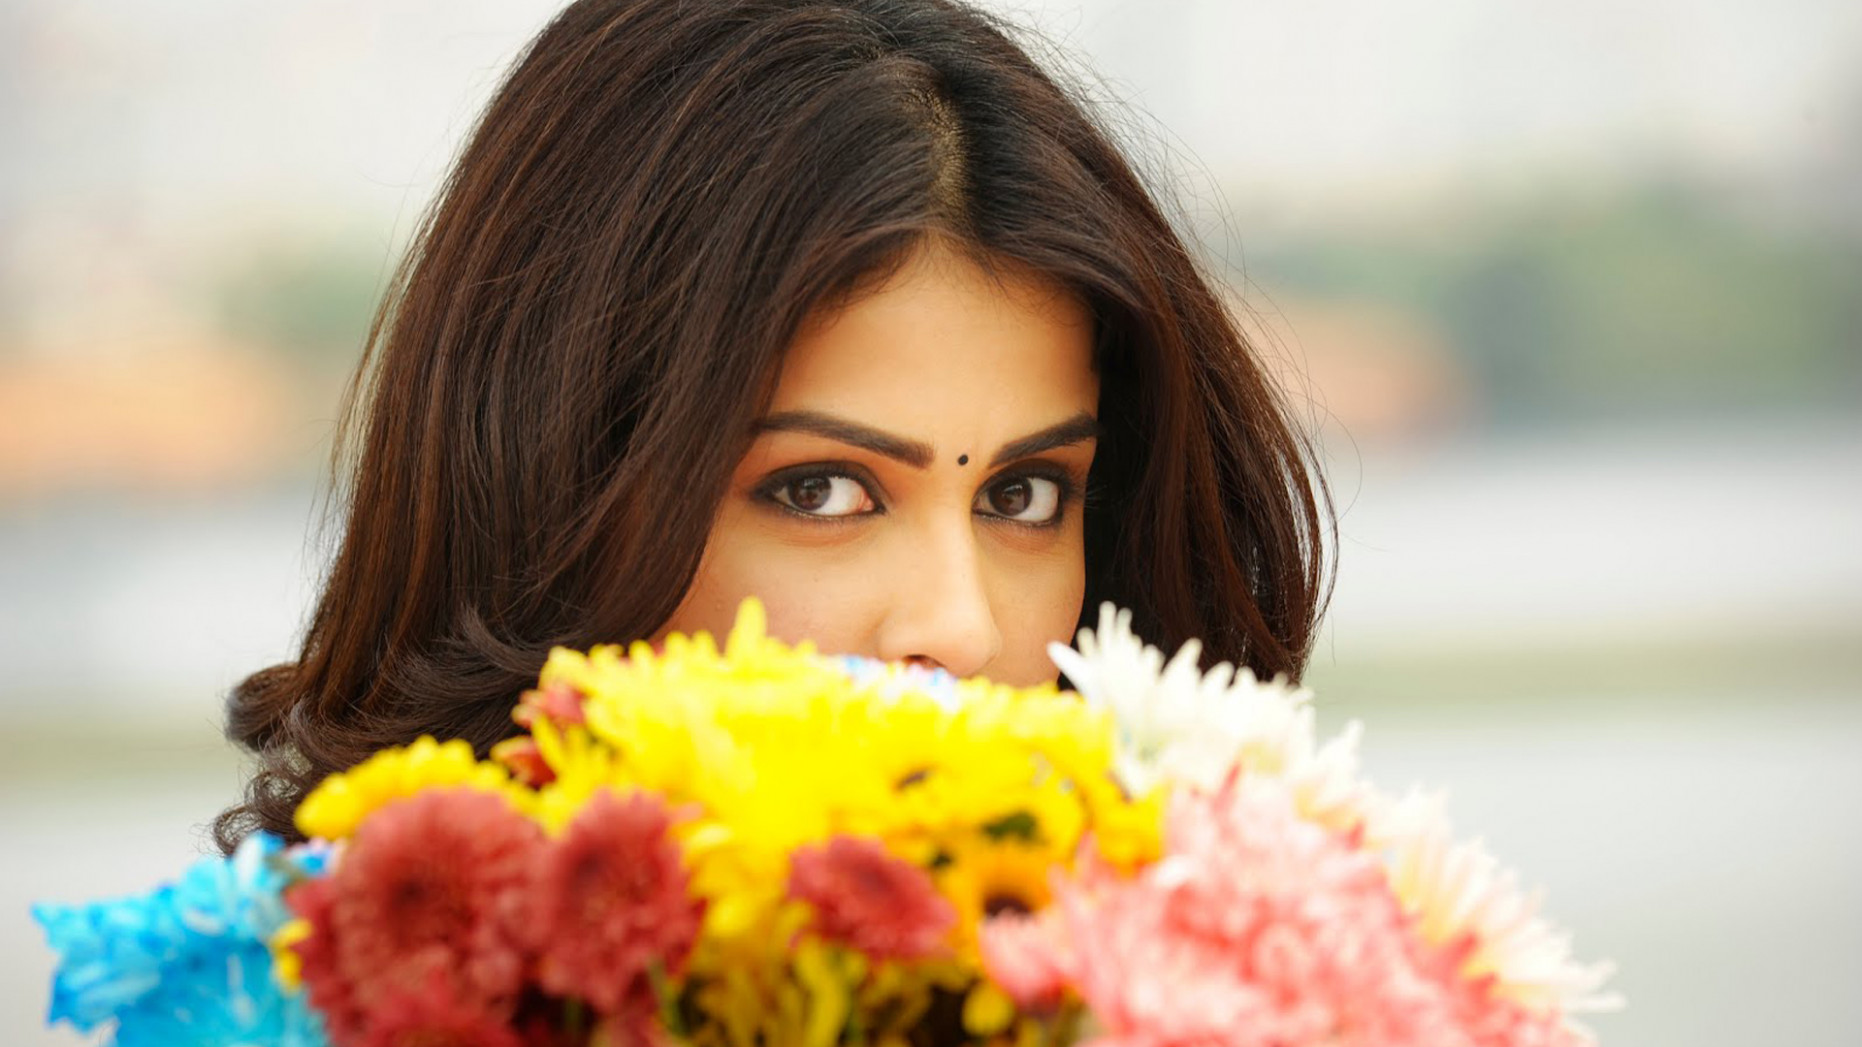 Genelia in Telugu Movie #4166607, 1920x1080 | All For Desktop